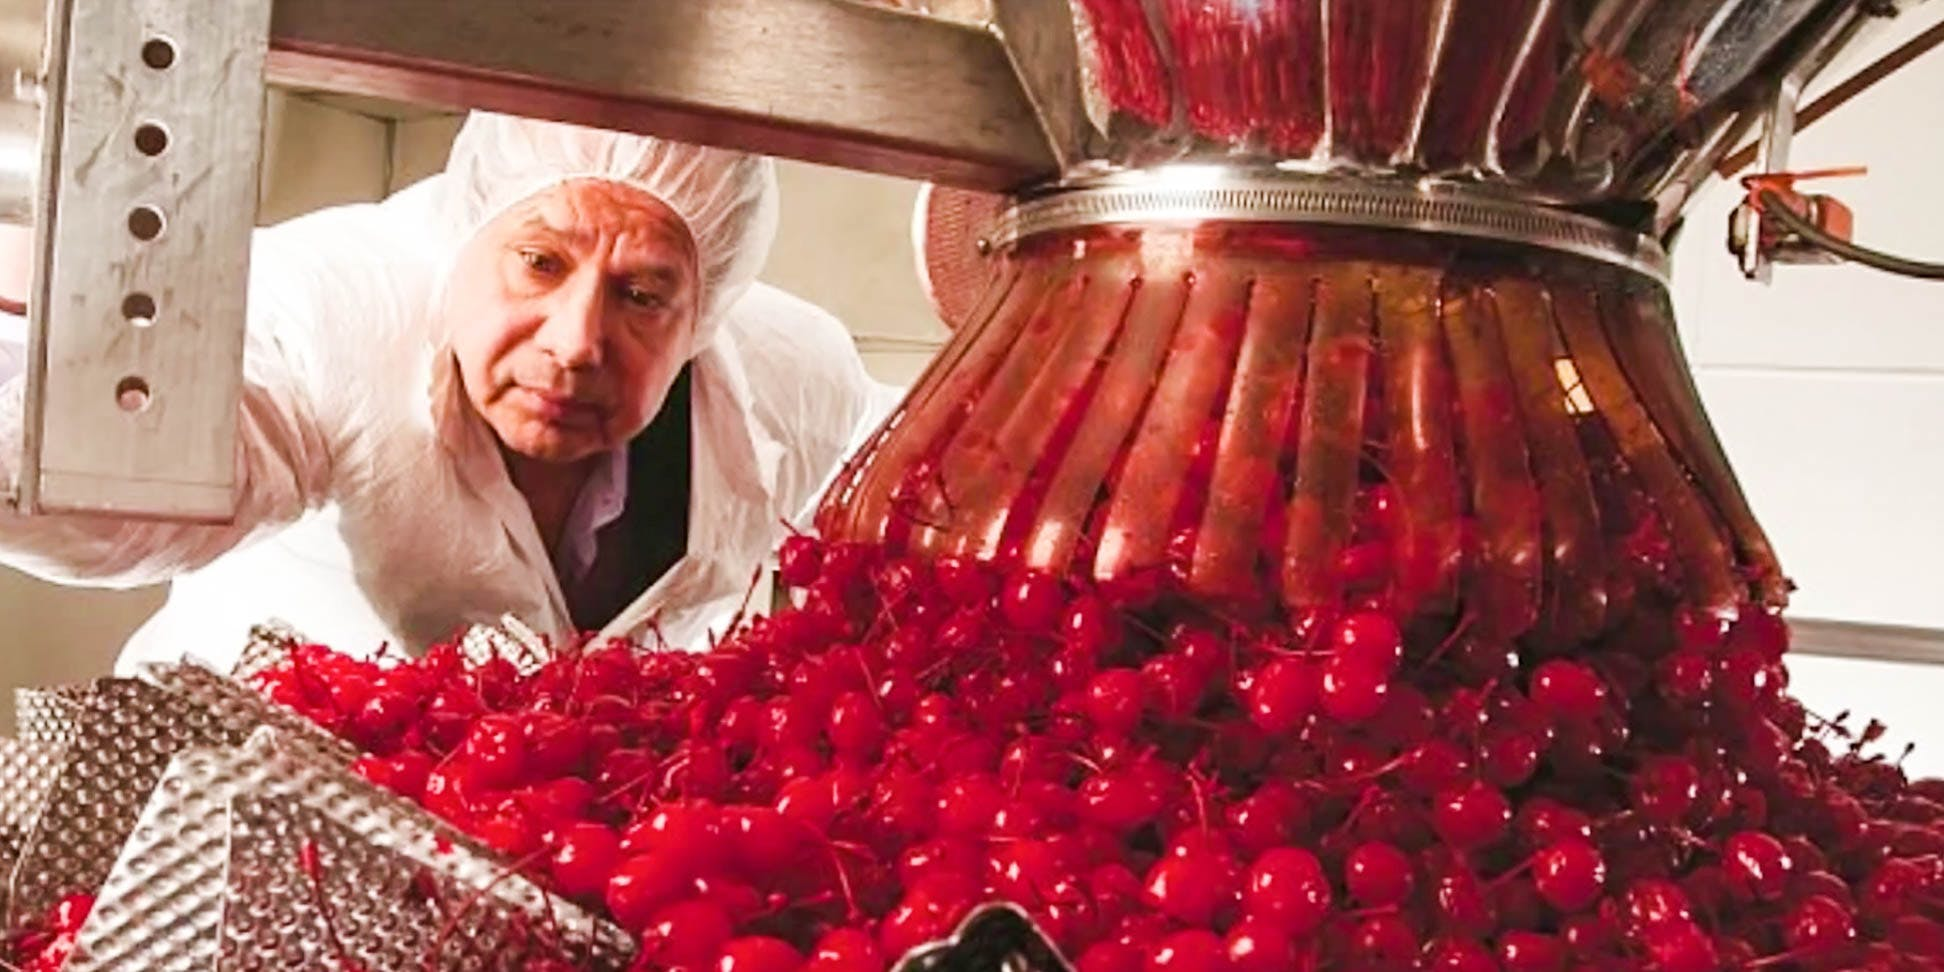 The Mysterious Death Of Maraschino Cherry Mogul Arthur Mondella